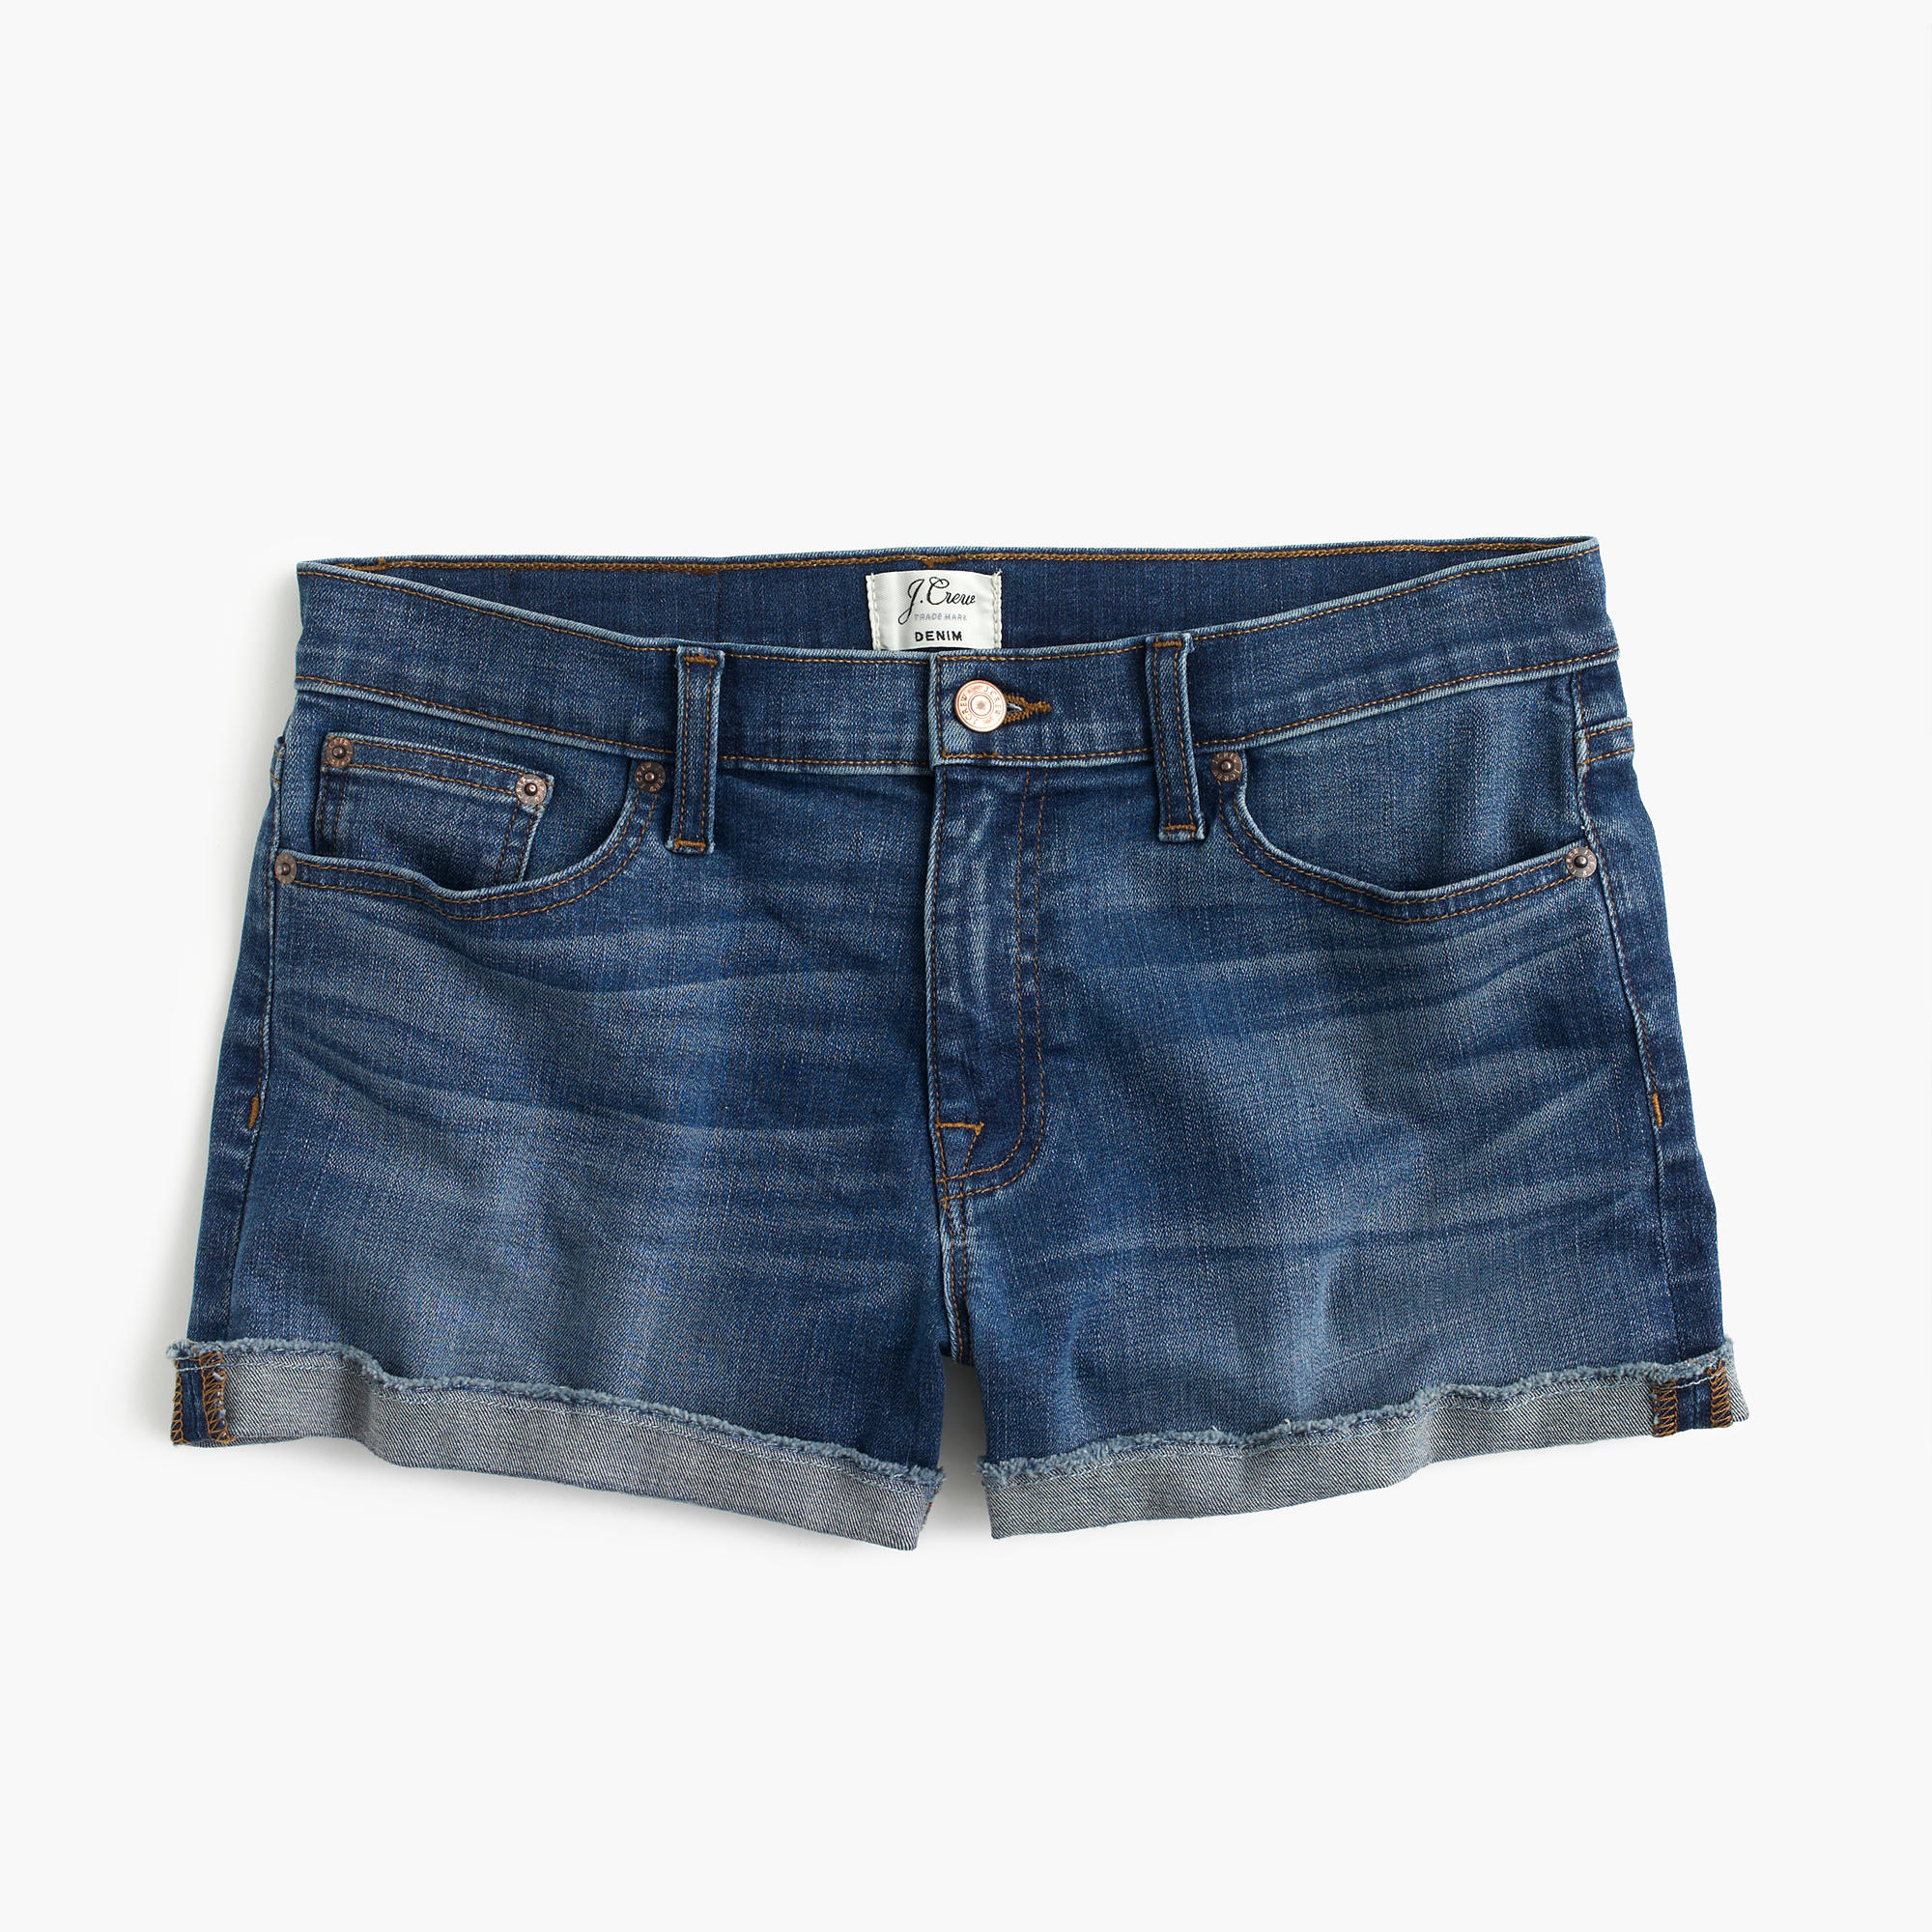 Denim Short In Merrill Wash : Women's Shorts | J.Crew